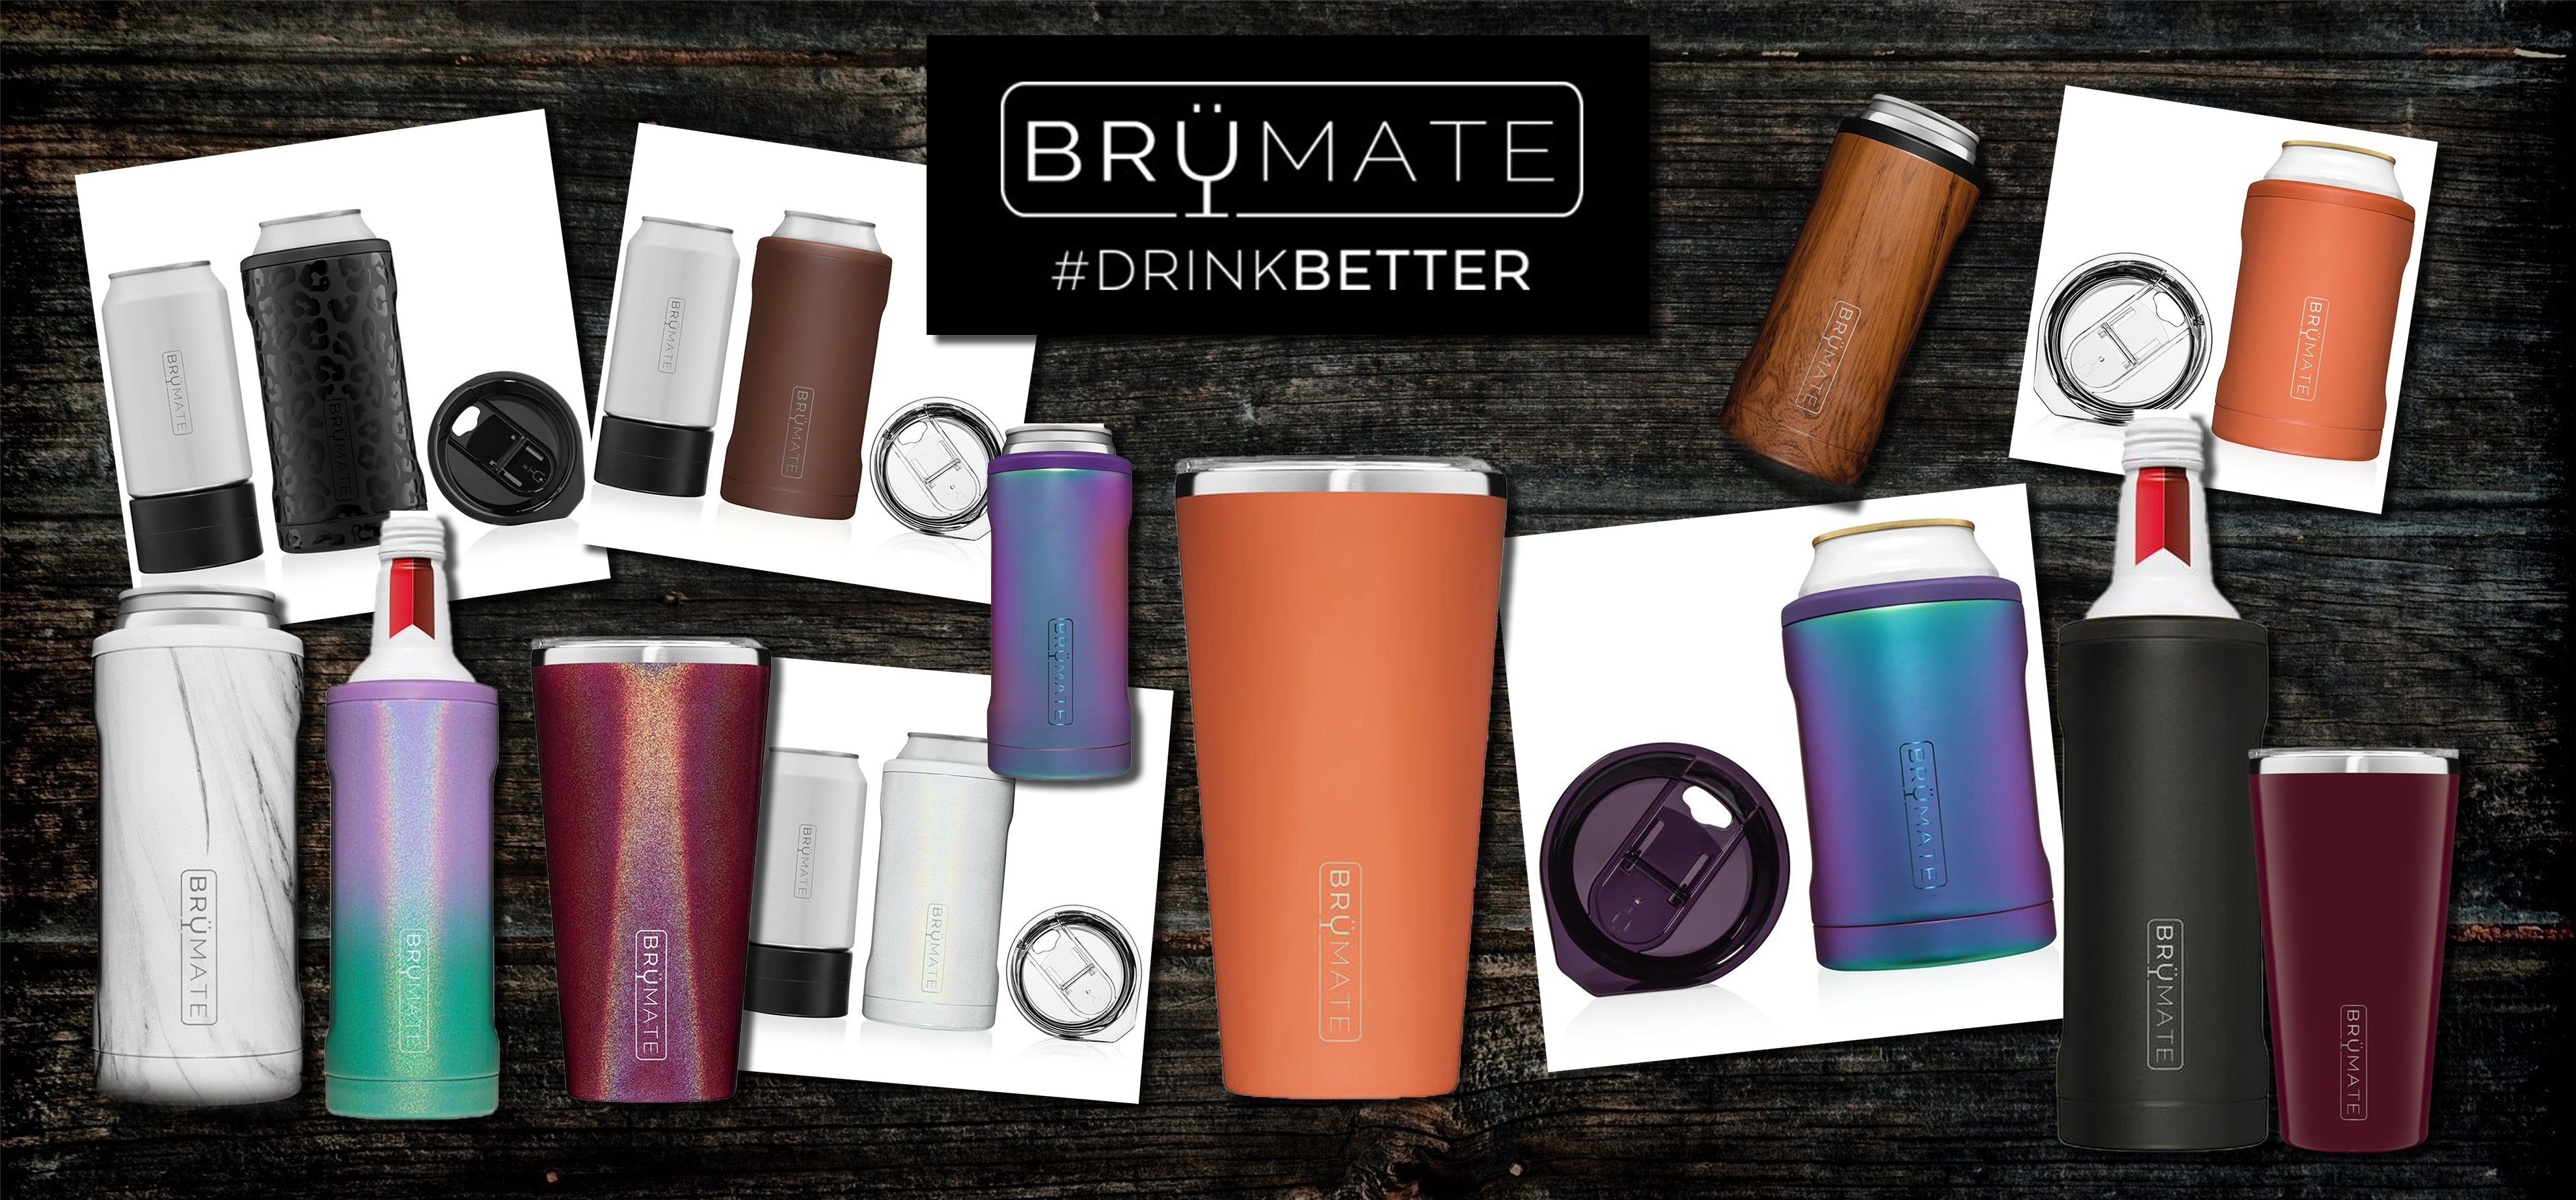 Brumate has arrived at Turnmeyer Galleries